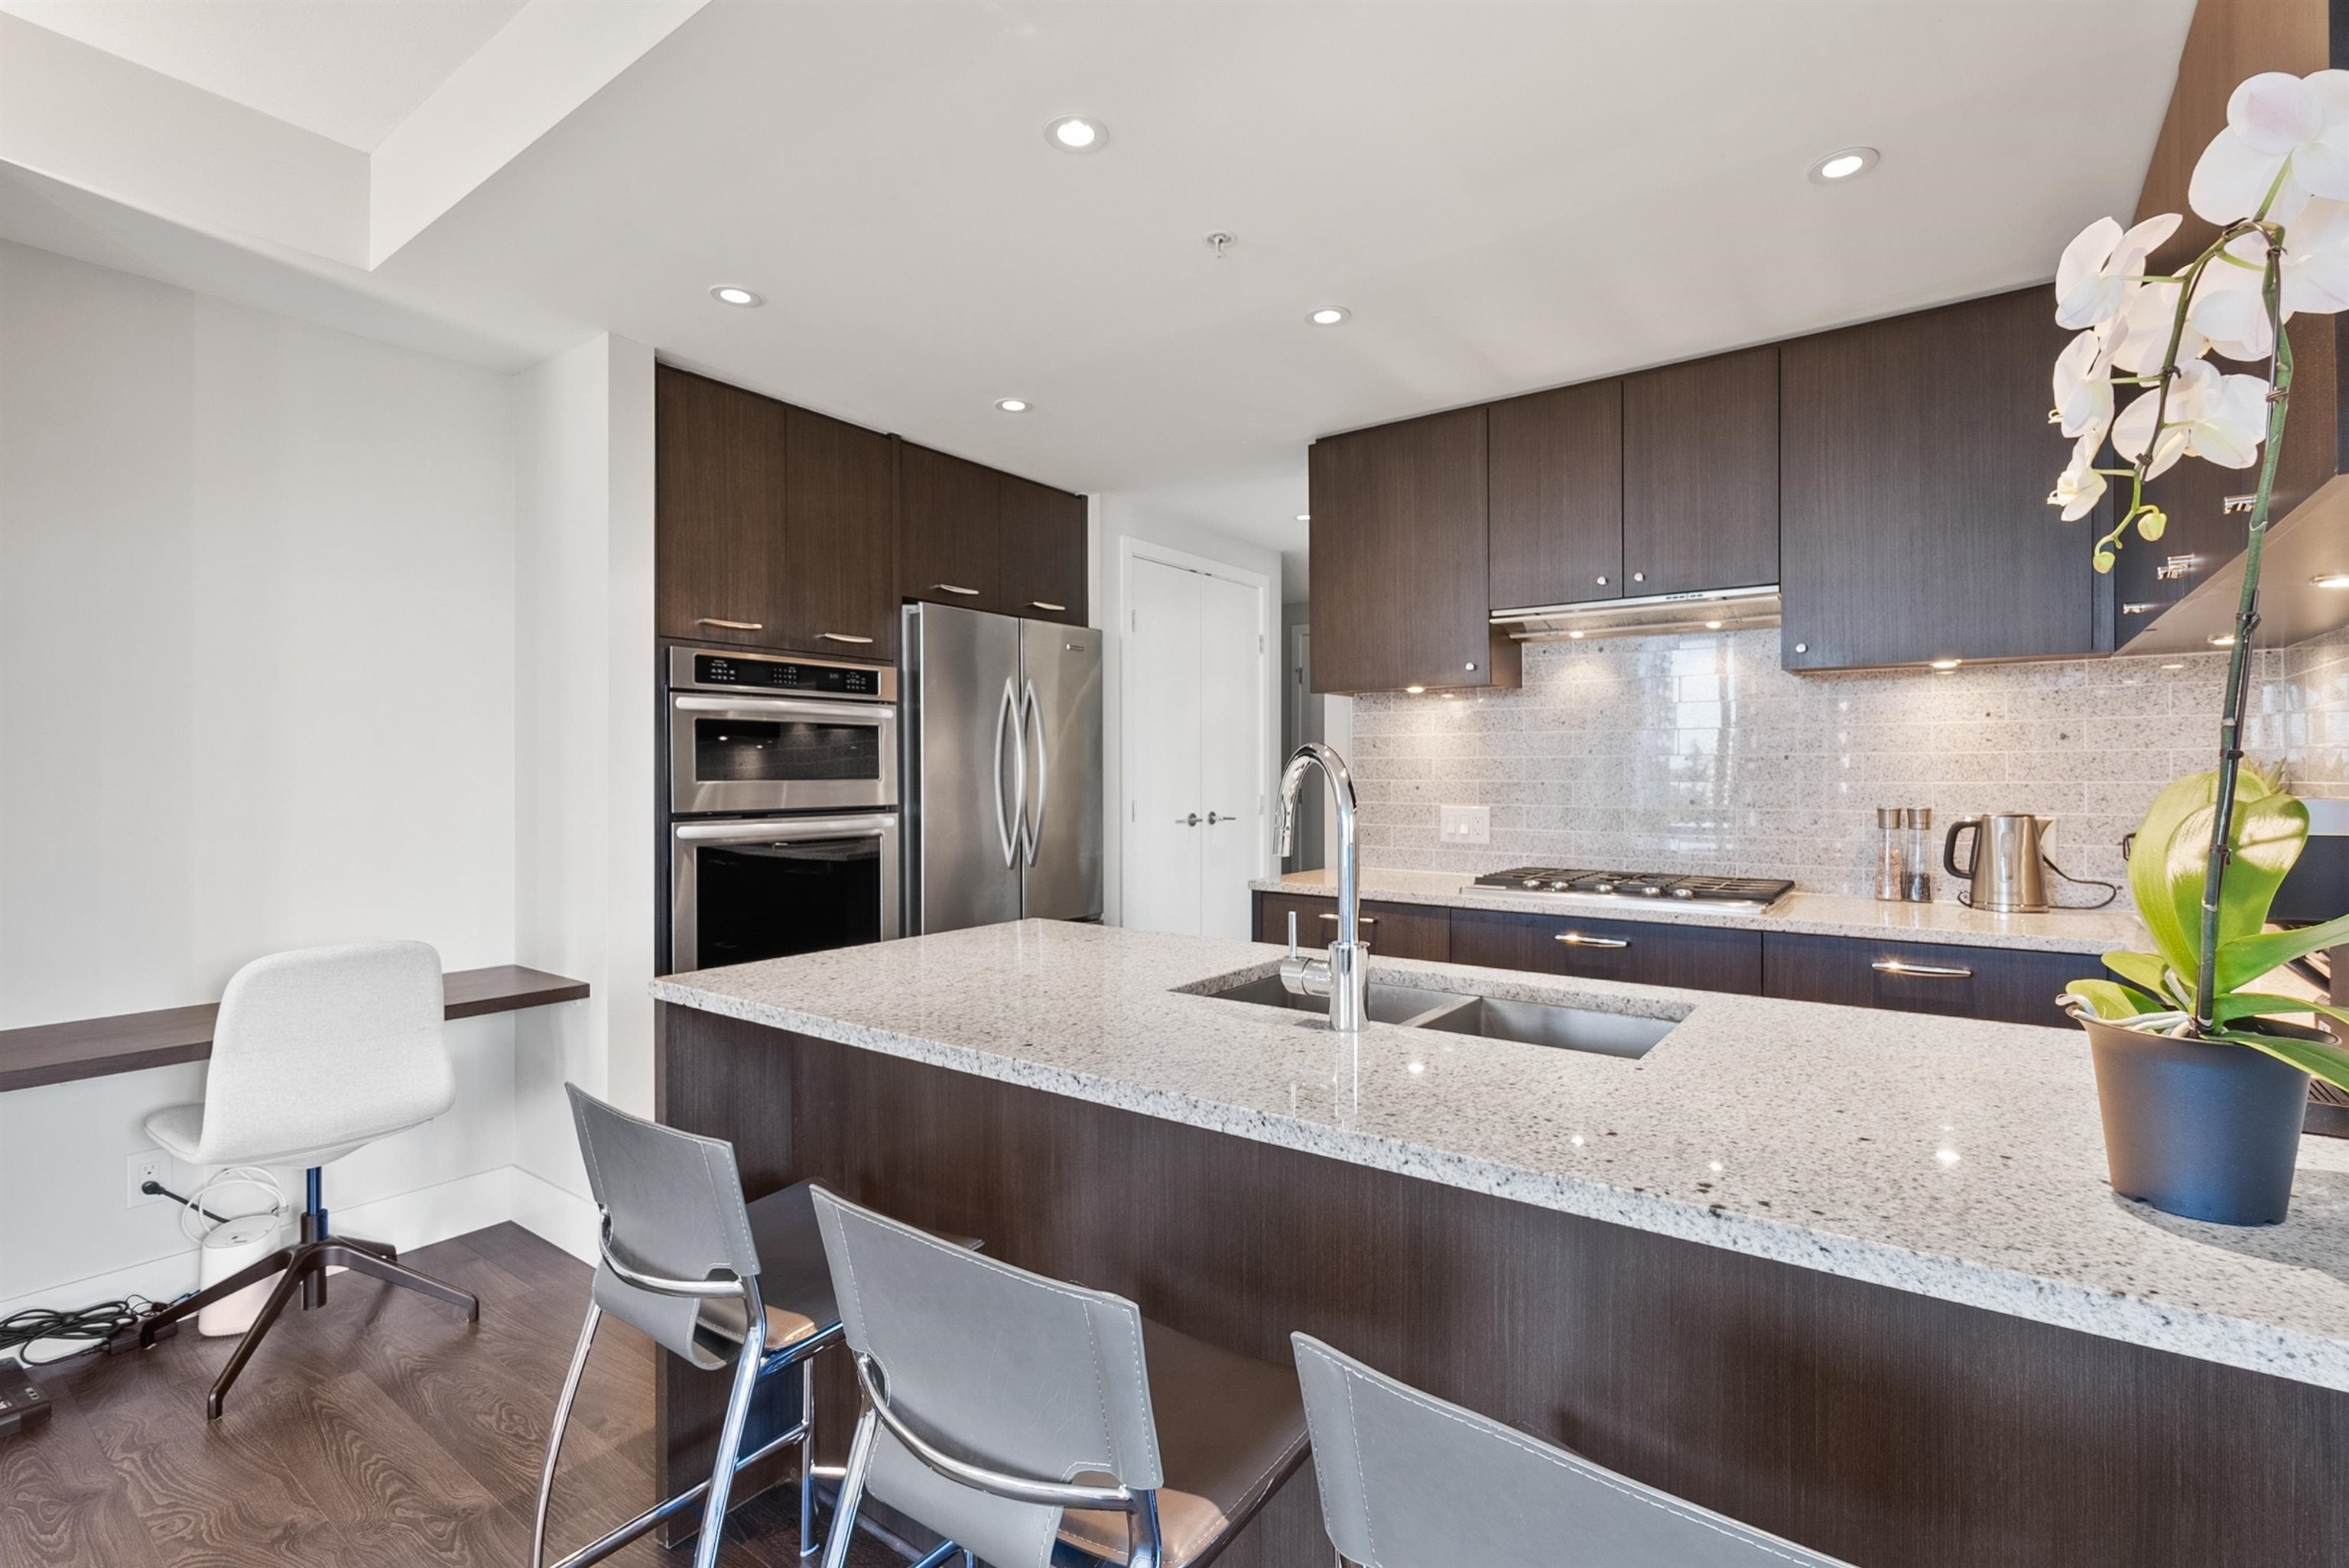 503 150 W 15TH STREET - Central Lonsdale Apartment/Condo for sale, 2 Bedrooms (R2624732) - #9